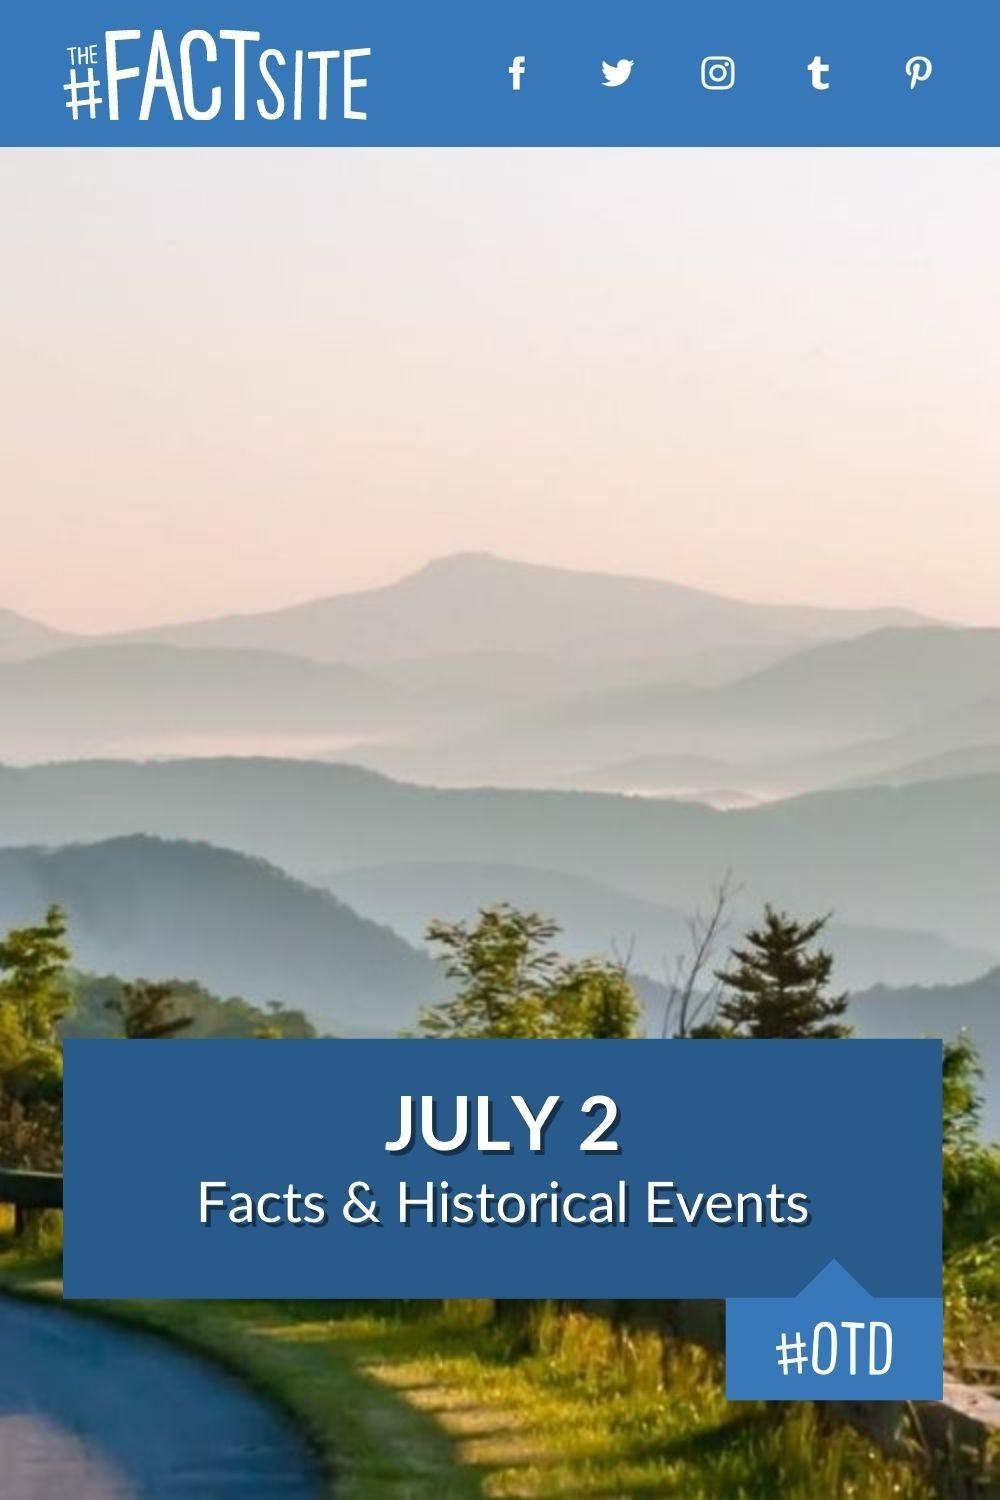 Facts & Historic Events That Happened on July 2